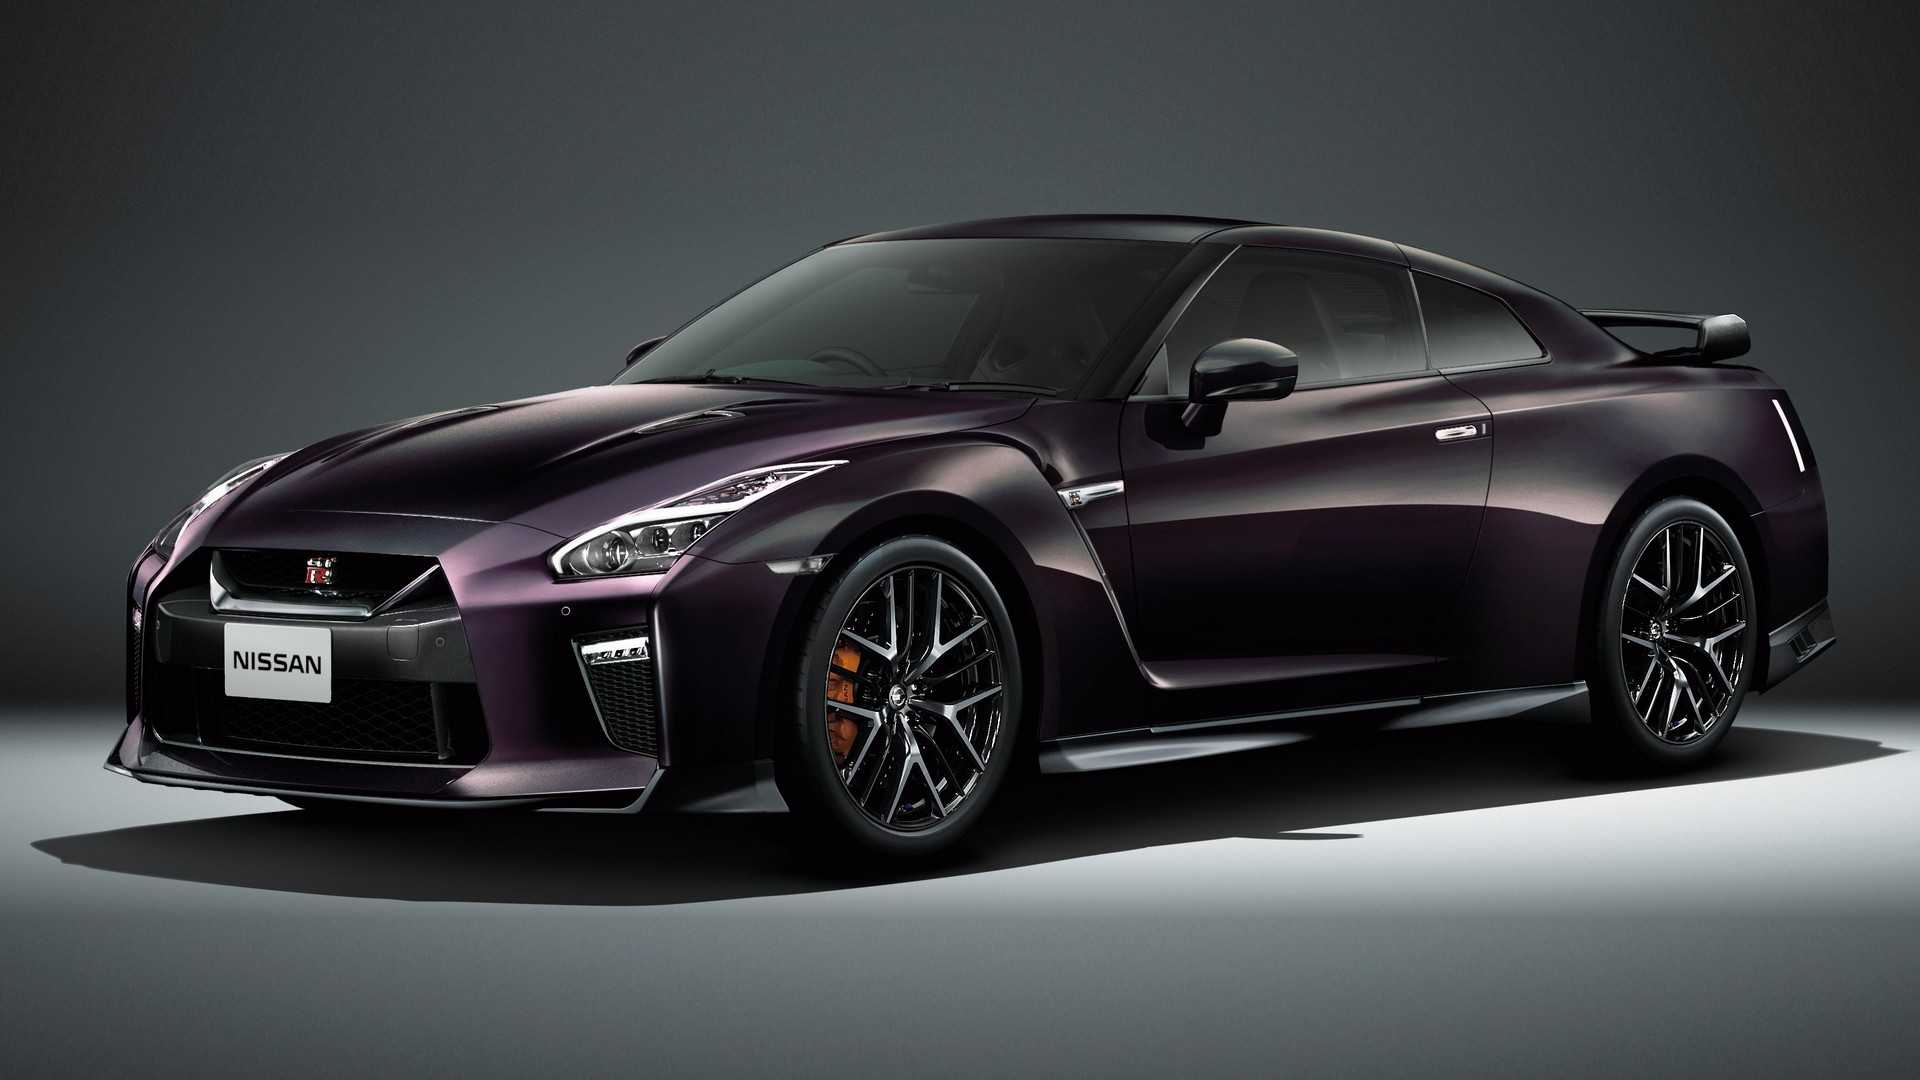 86 The 2019 Nissan Gt R Concept